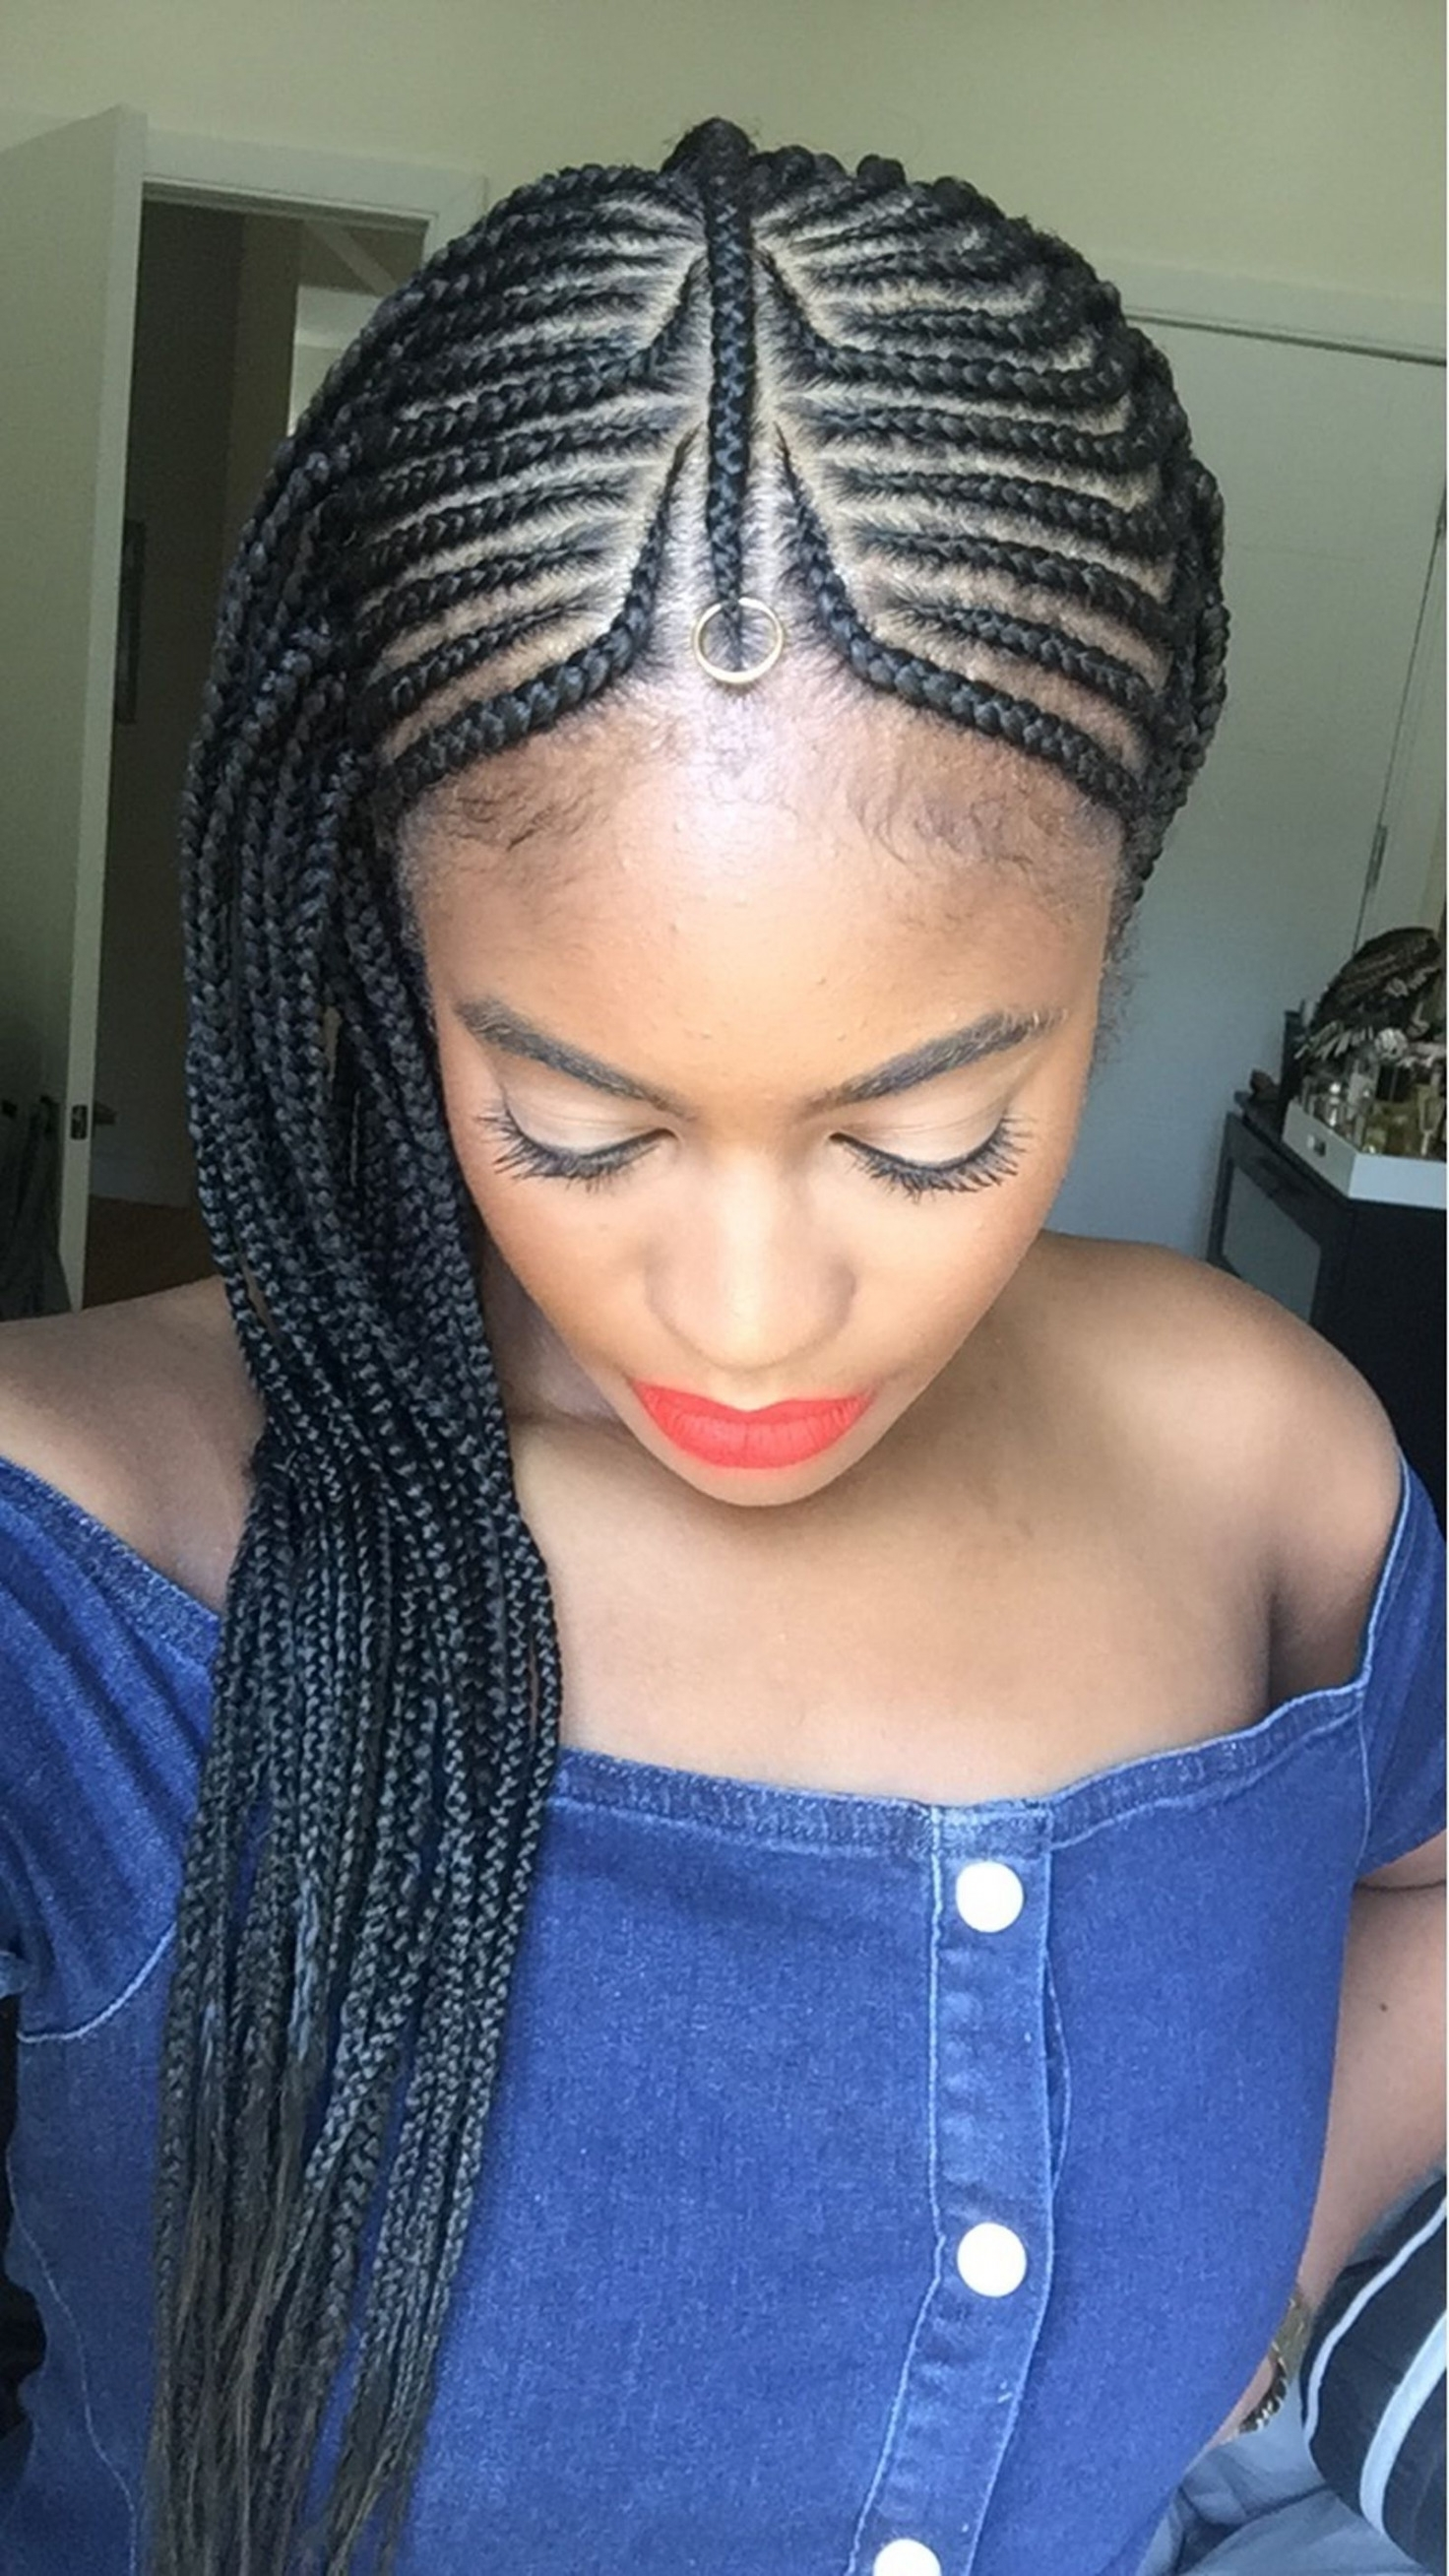 Fresh Elegant French Braid Hairstyles For Black Hair – Orlandowhite For Most Recent French Braid Hairstyles For Black Hair (View 9 of 15)